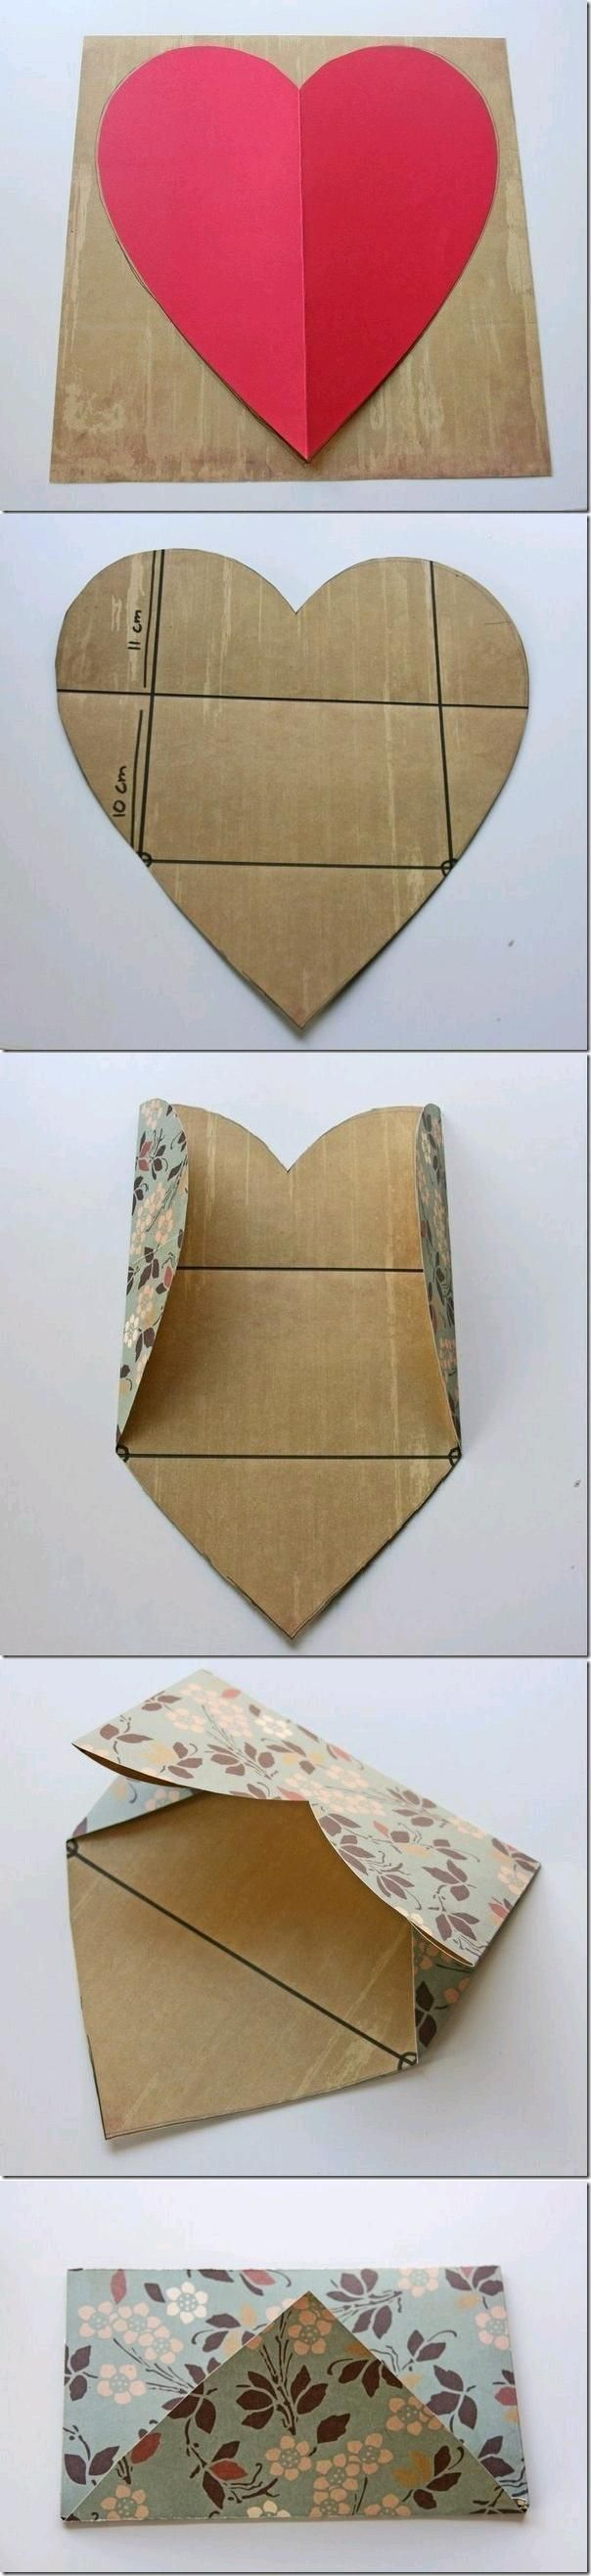 DIY Envelope from a Heart.    ****want to try